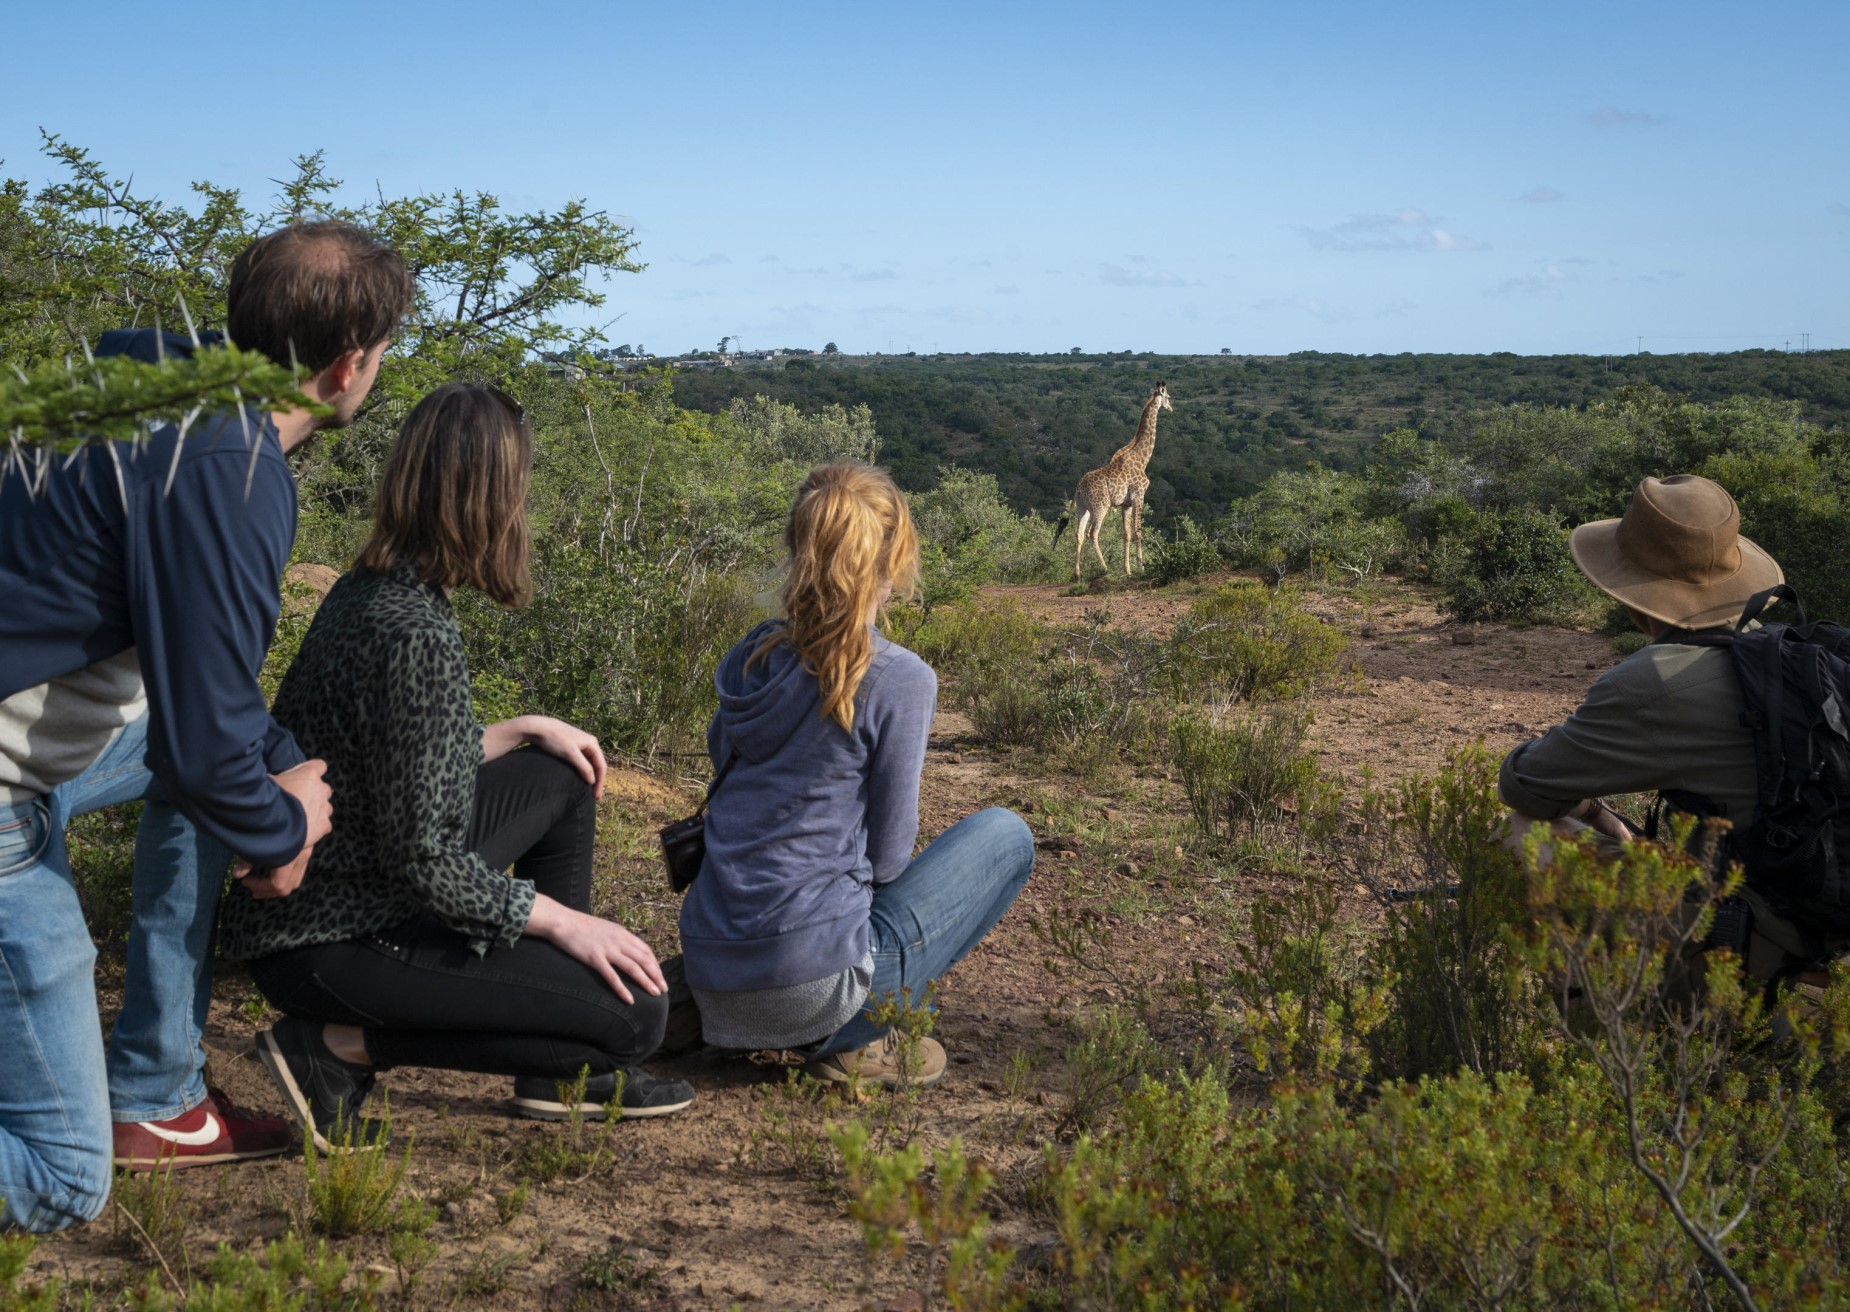 Giraffe tracking experiences on foot